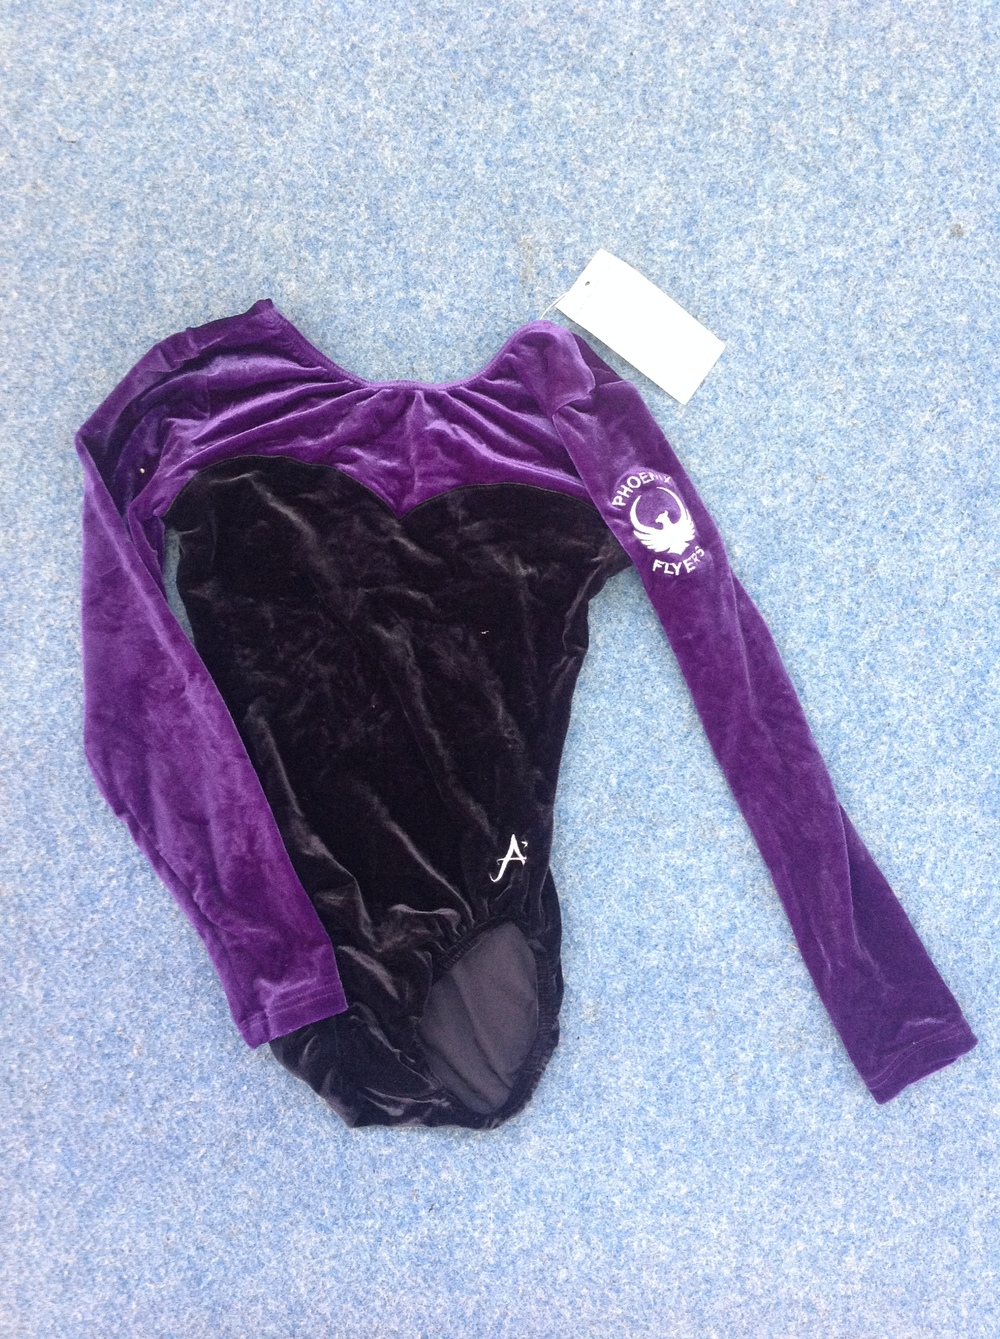 Phoenix Flyers Club (girls) leotard